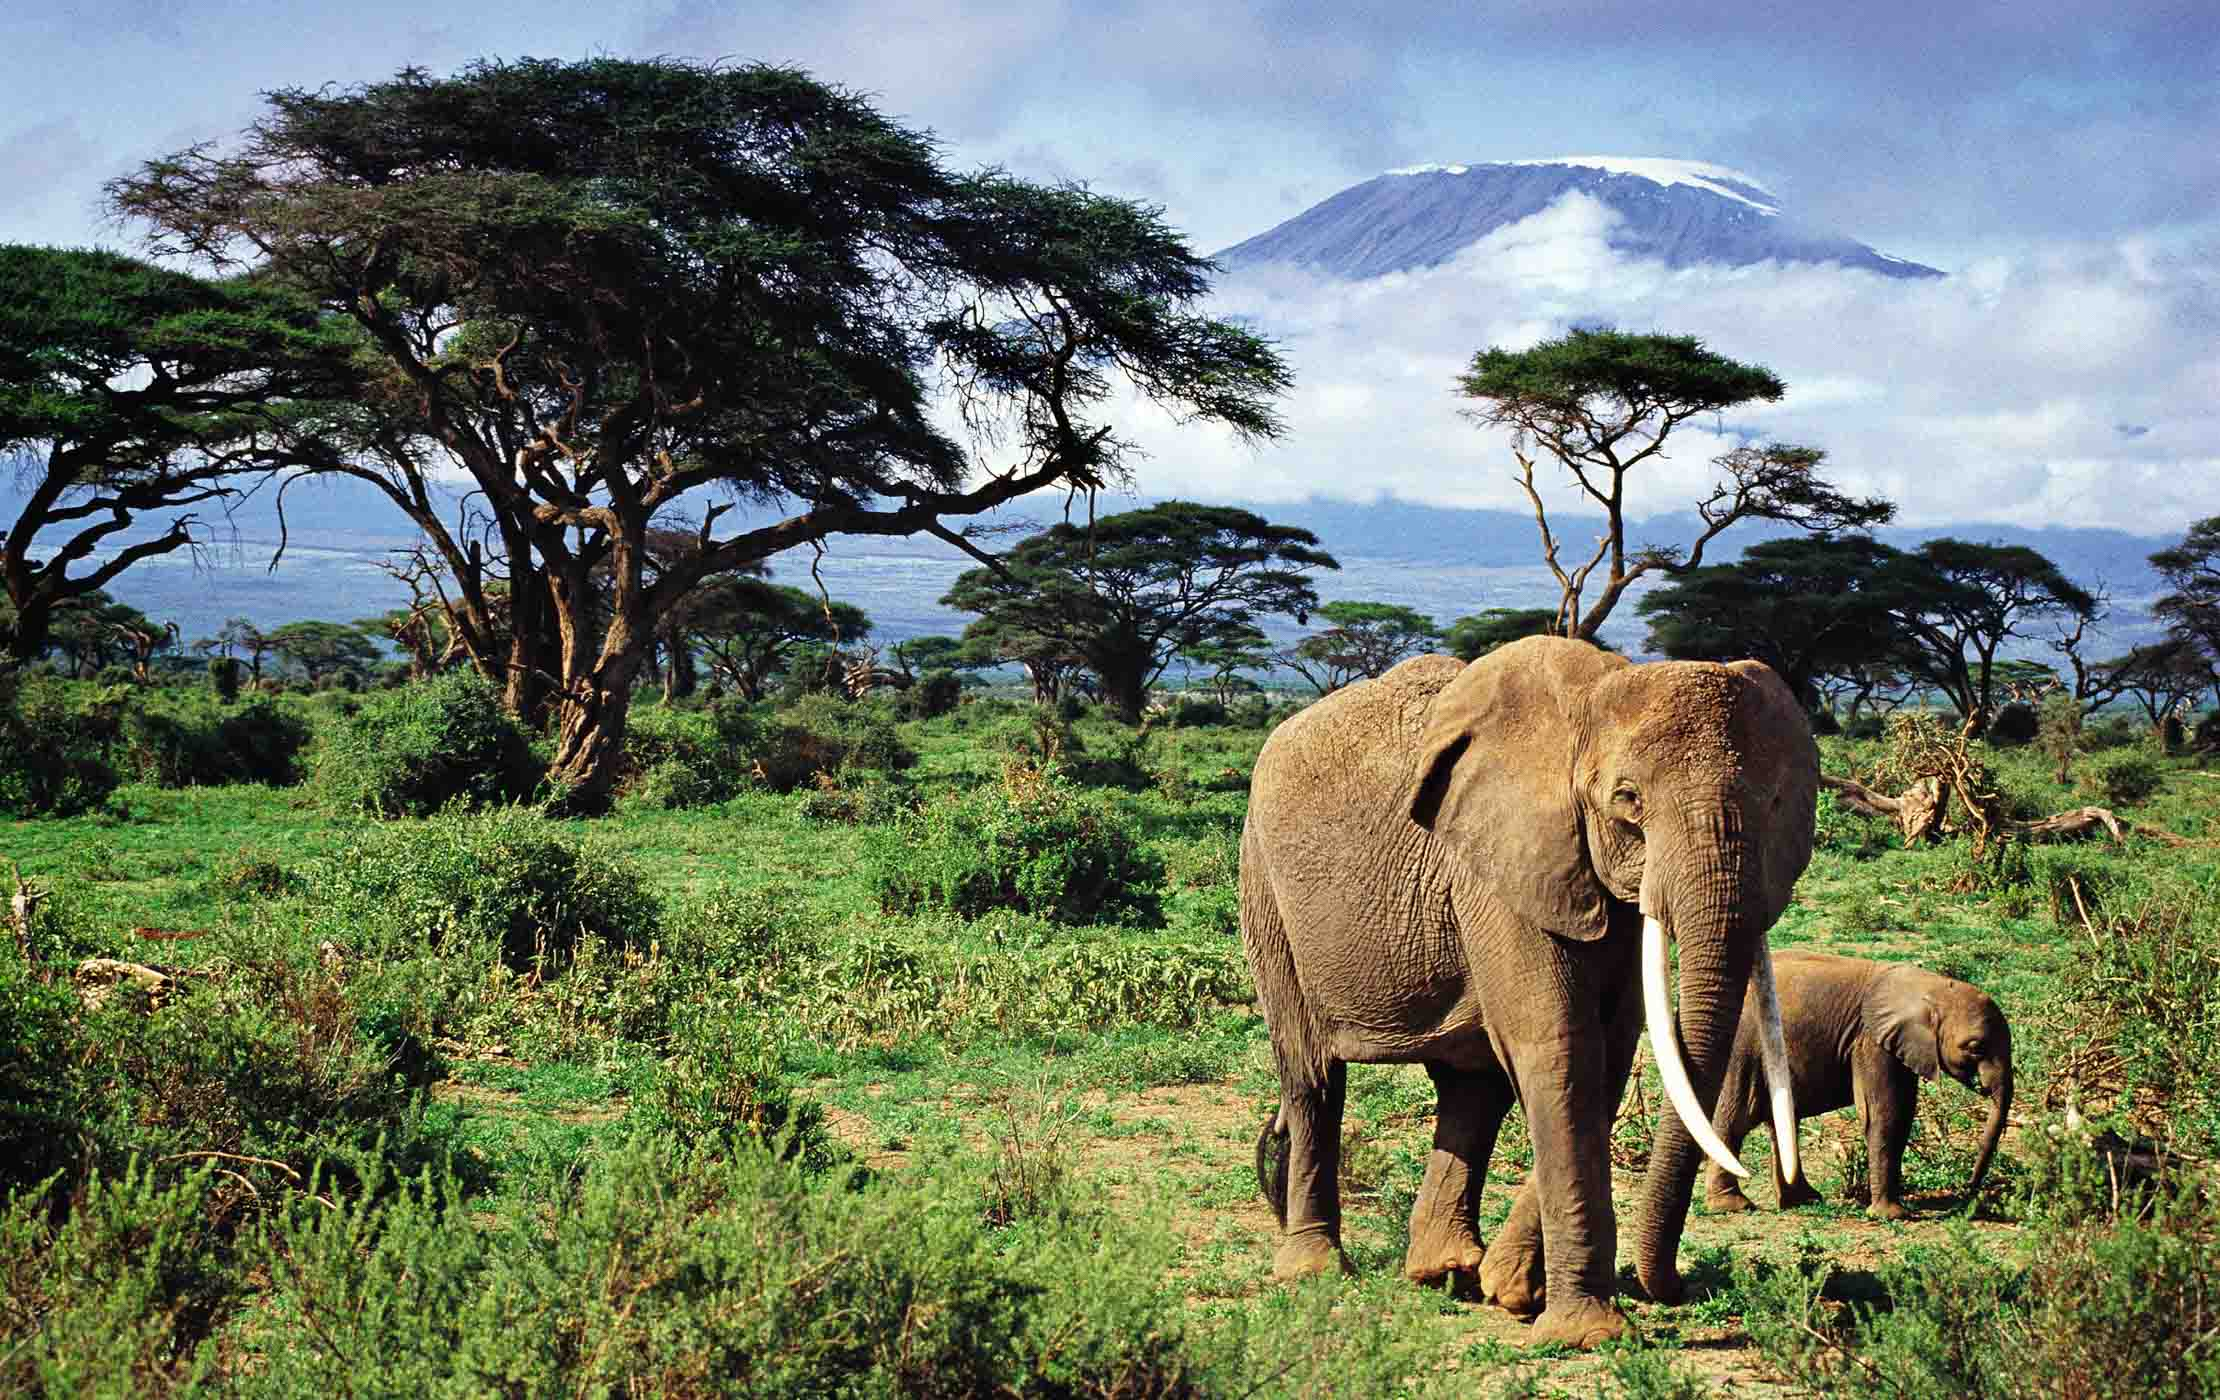 Elephant and baby elephant waling in Mount Kilimanjarol